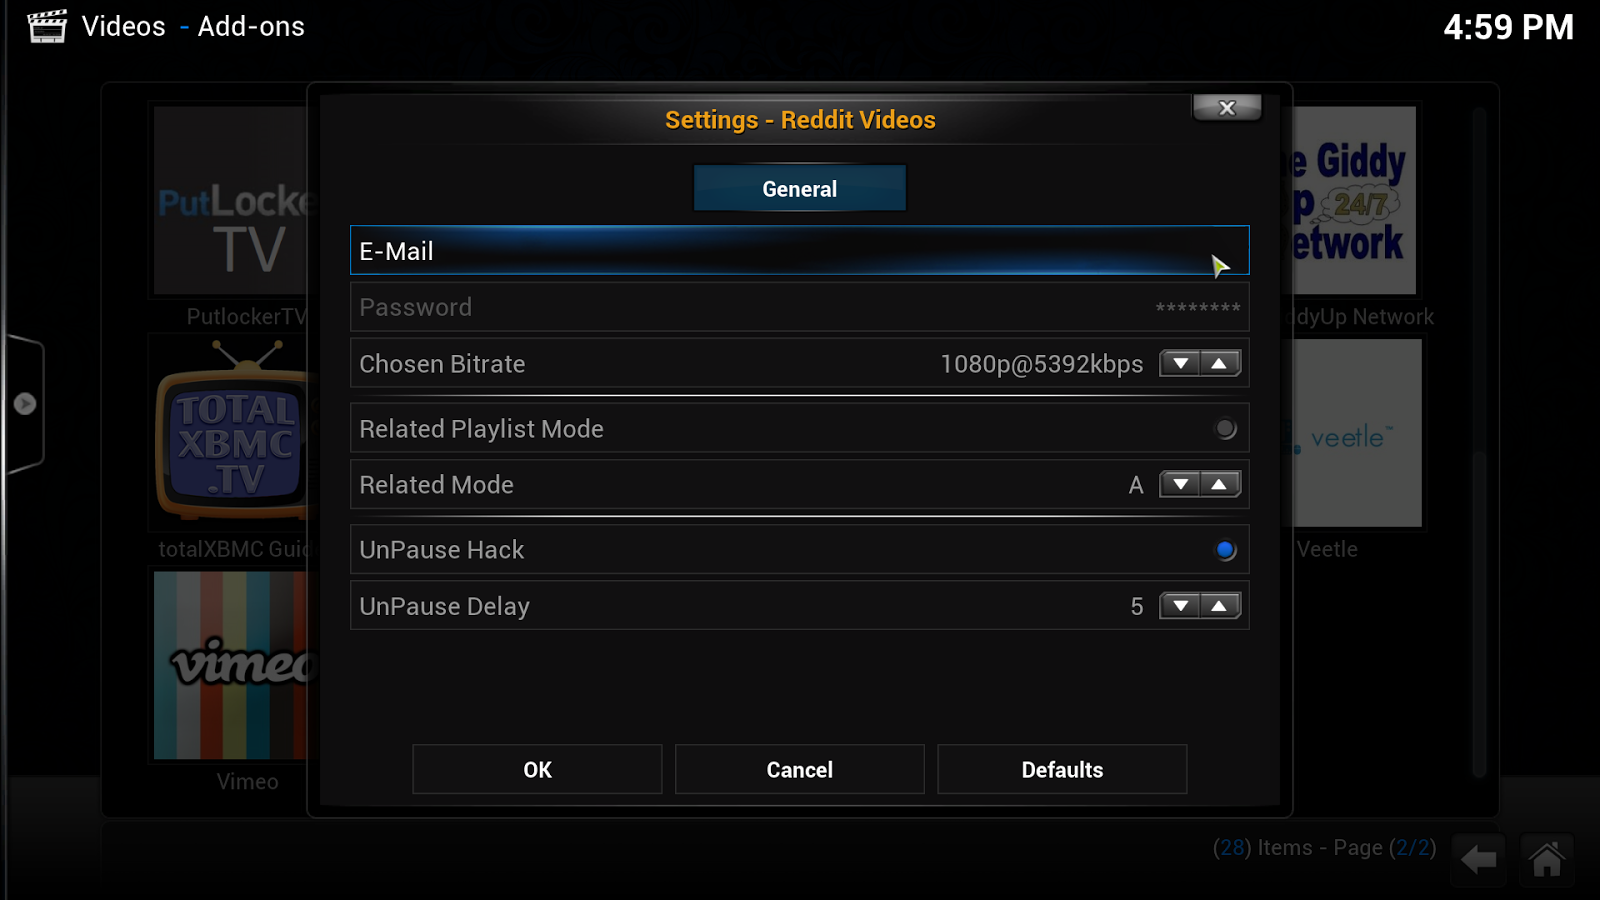 video add-on Reddit videos Xbmc email